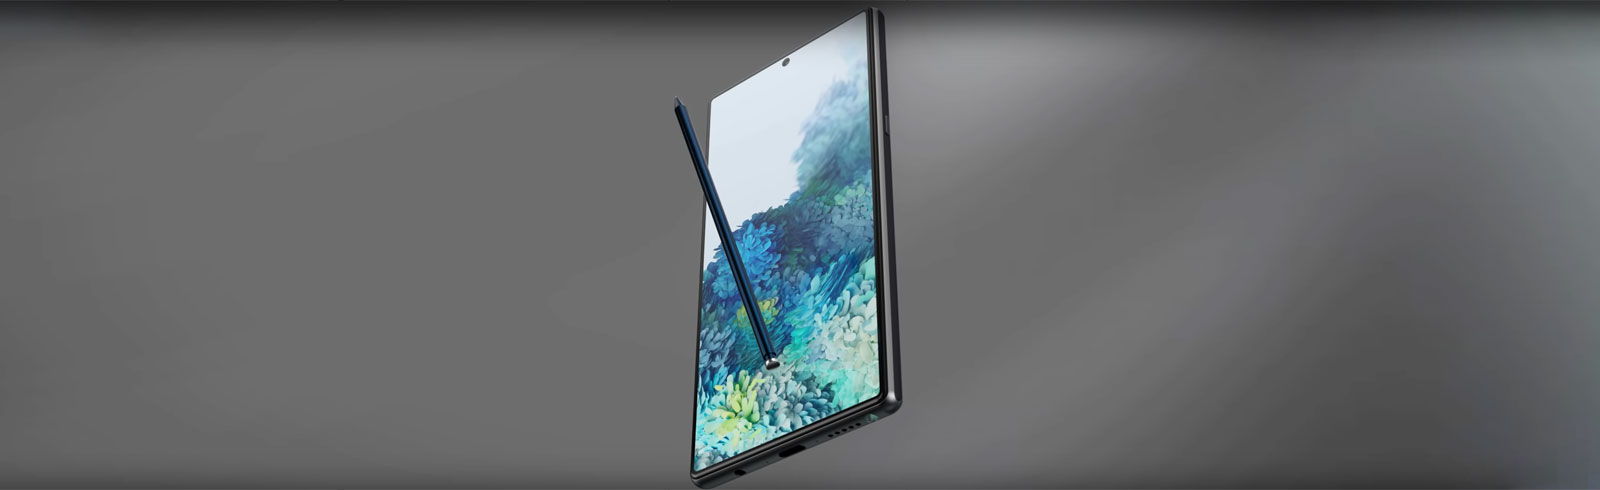 Leak: the Samsung Galaxy Note 20 series will use an LTPO backplane technology